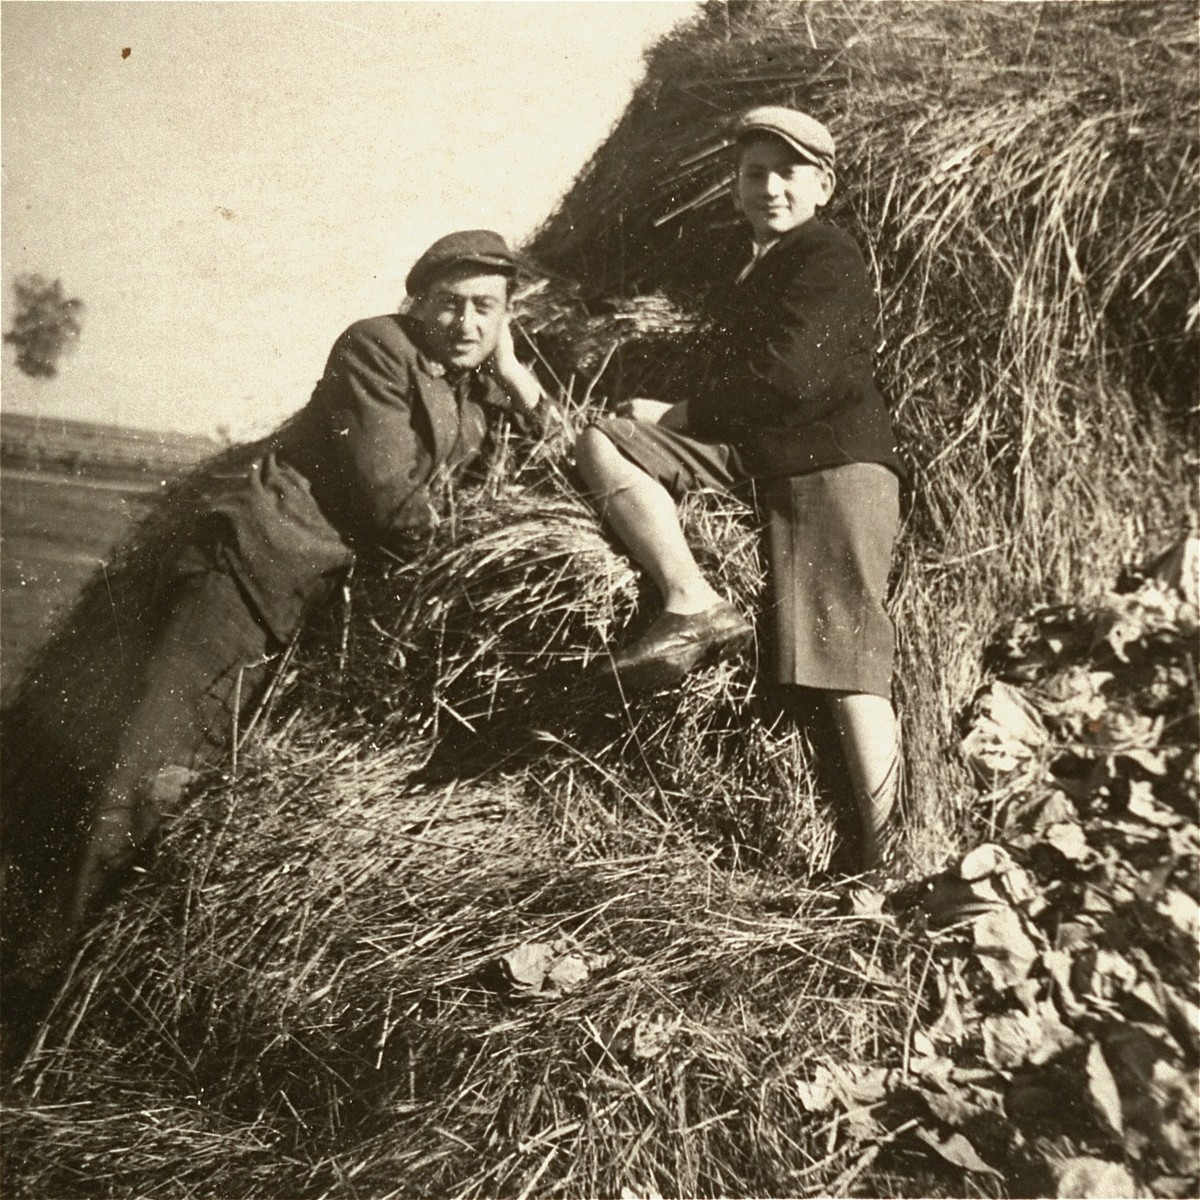 Two Jewish youth sit on a haystack in the Kolbuszowa ghetto.  Pictured are Manius Notowicz and his friend Mondi Stub.